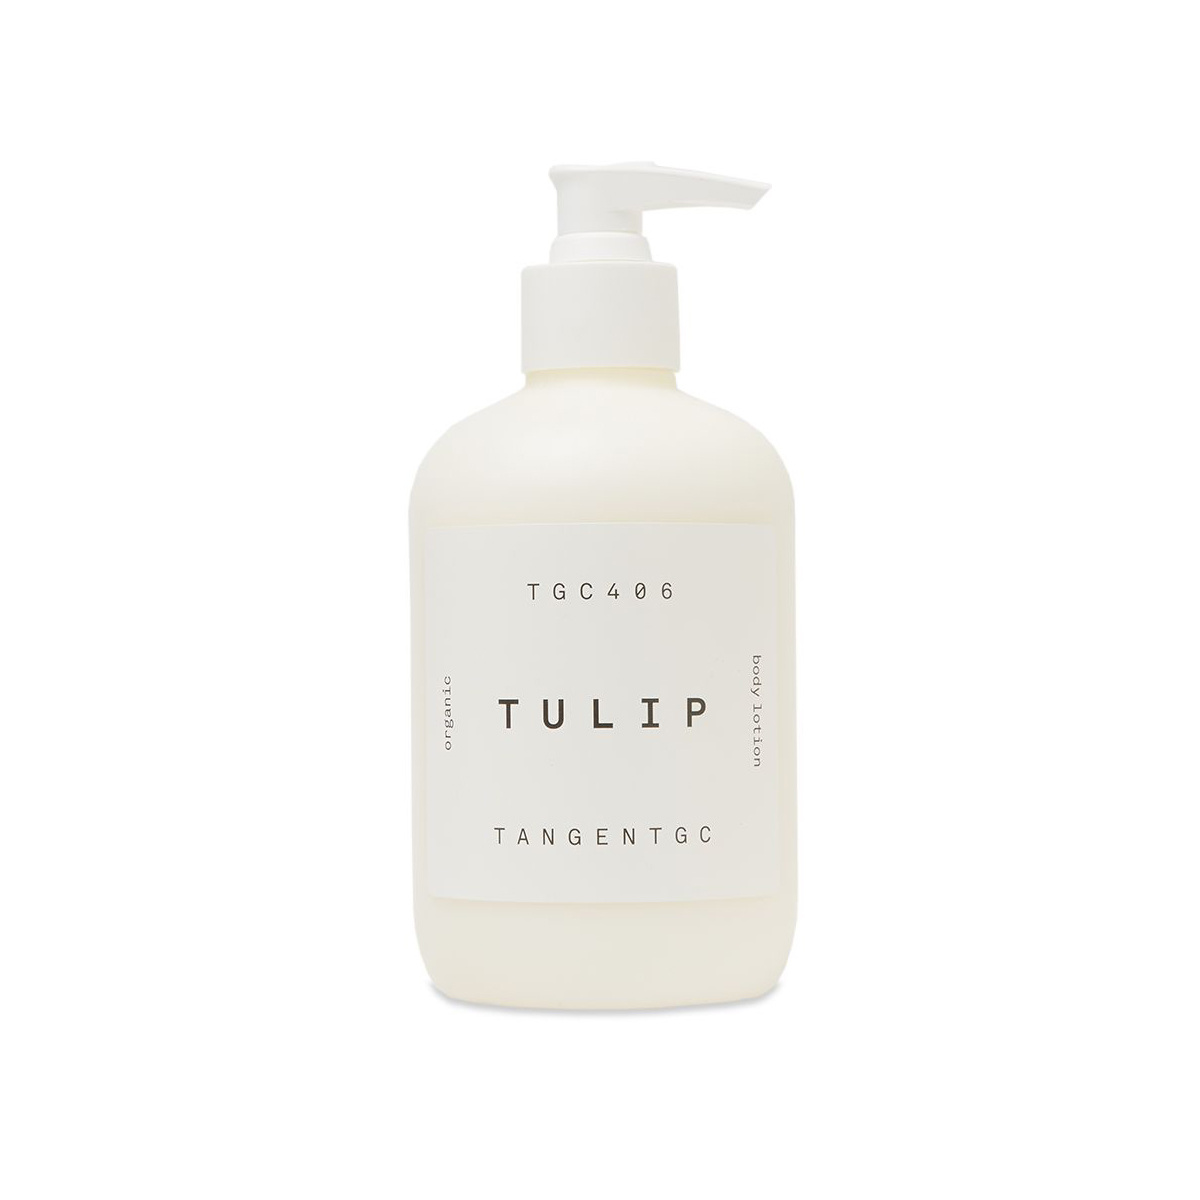 Tangent GC Tulip Organic Body Lotion